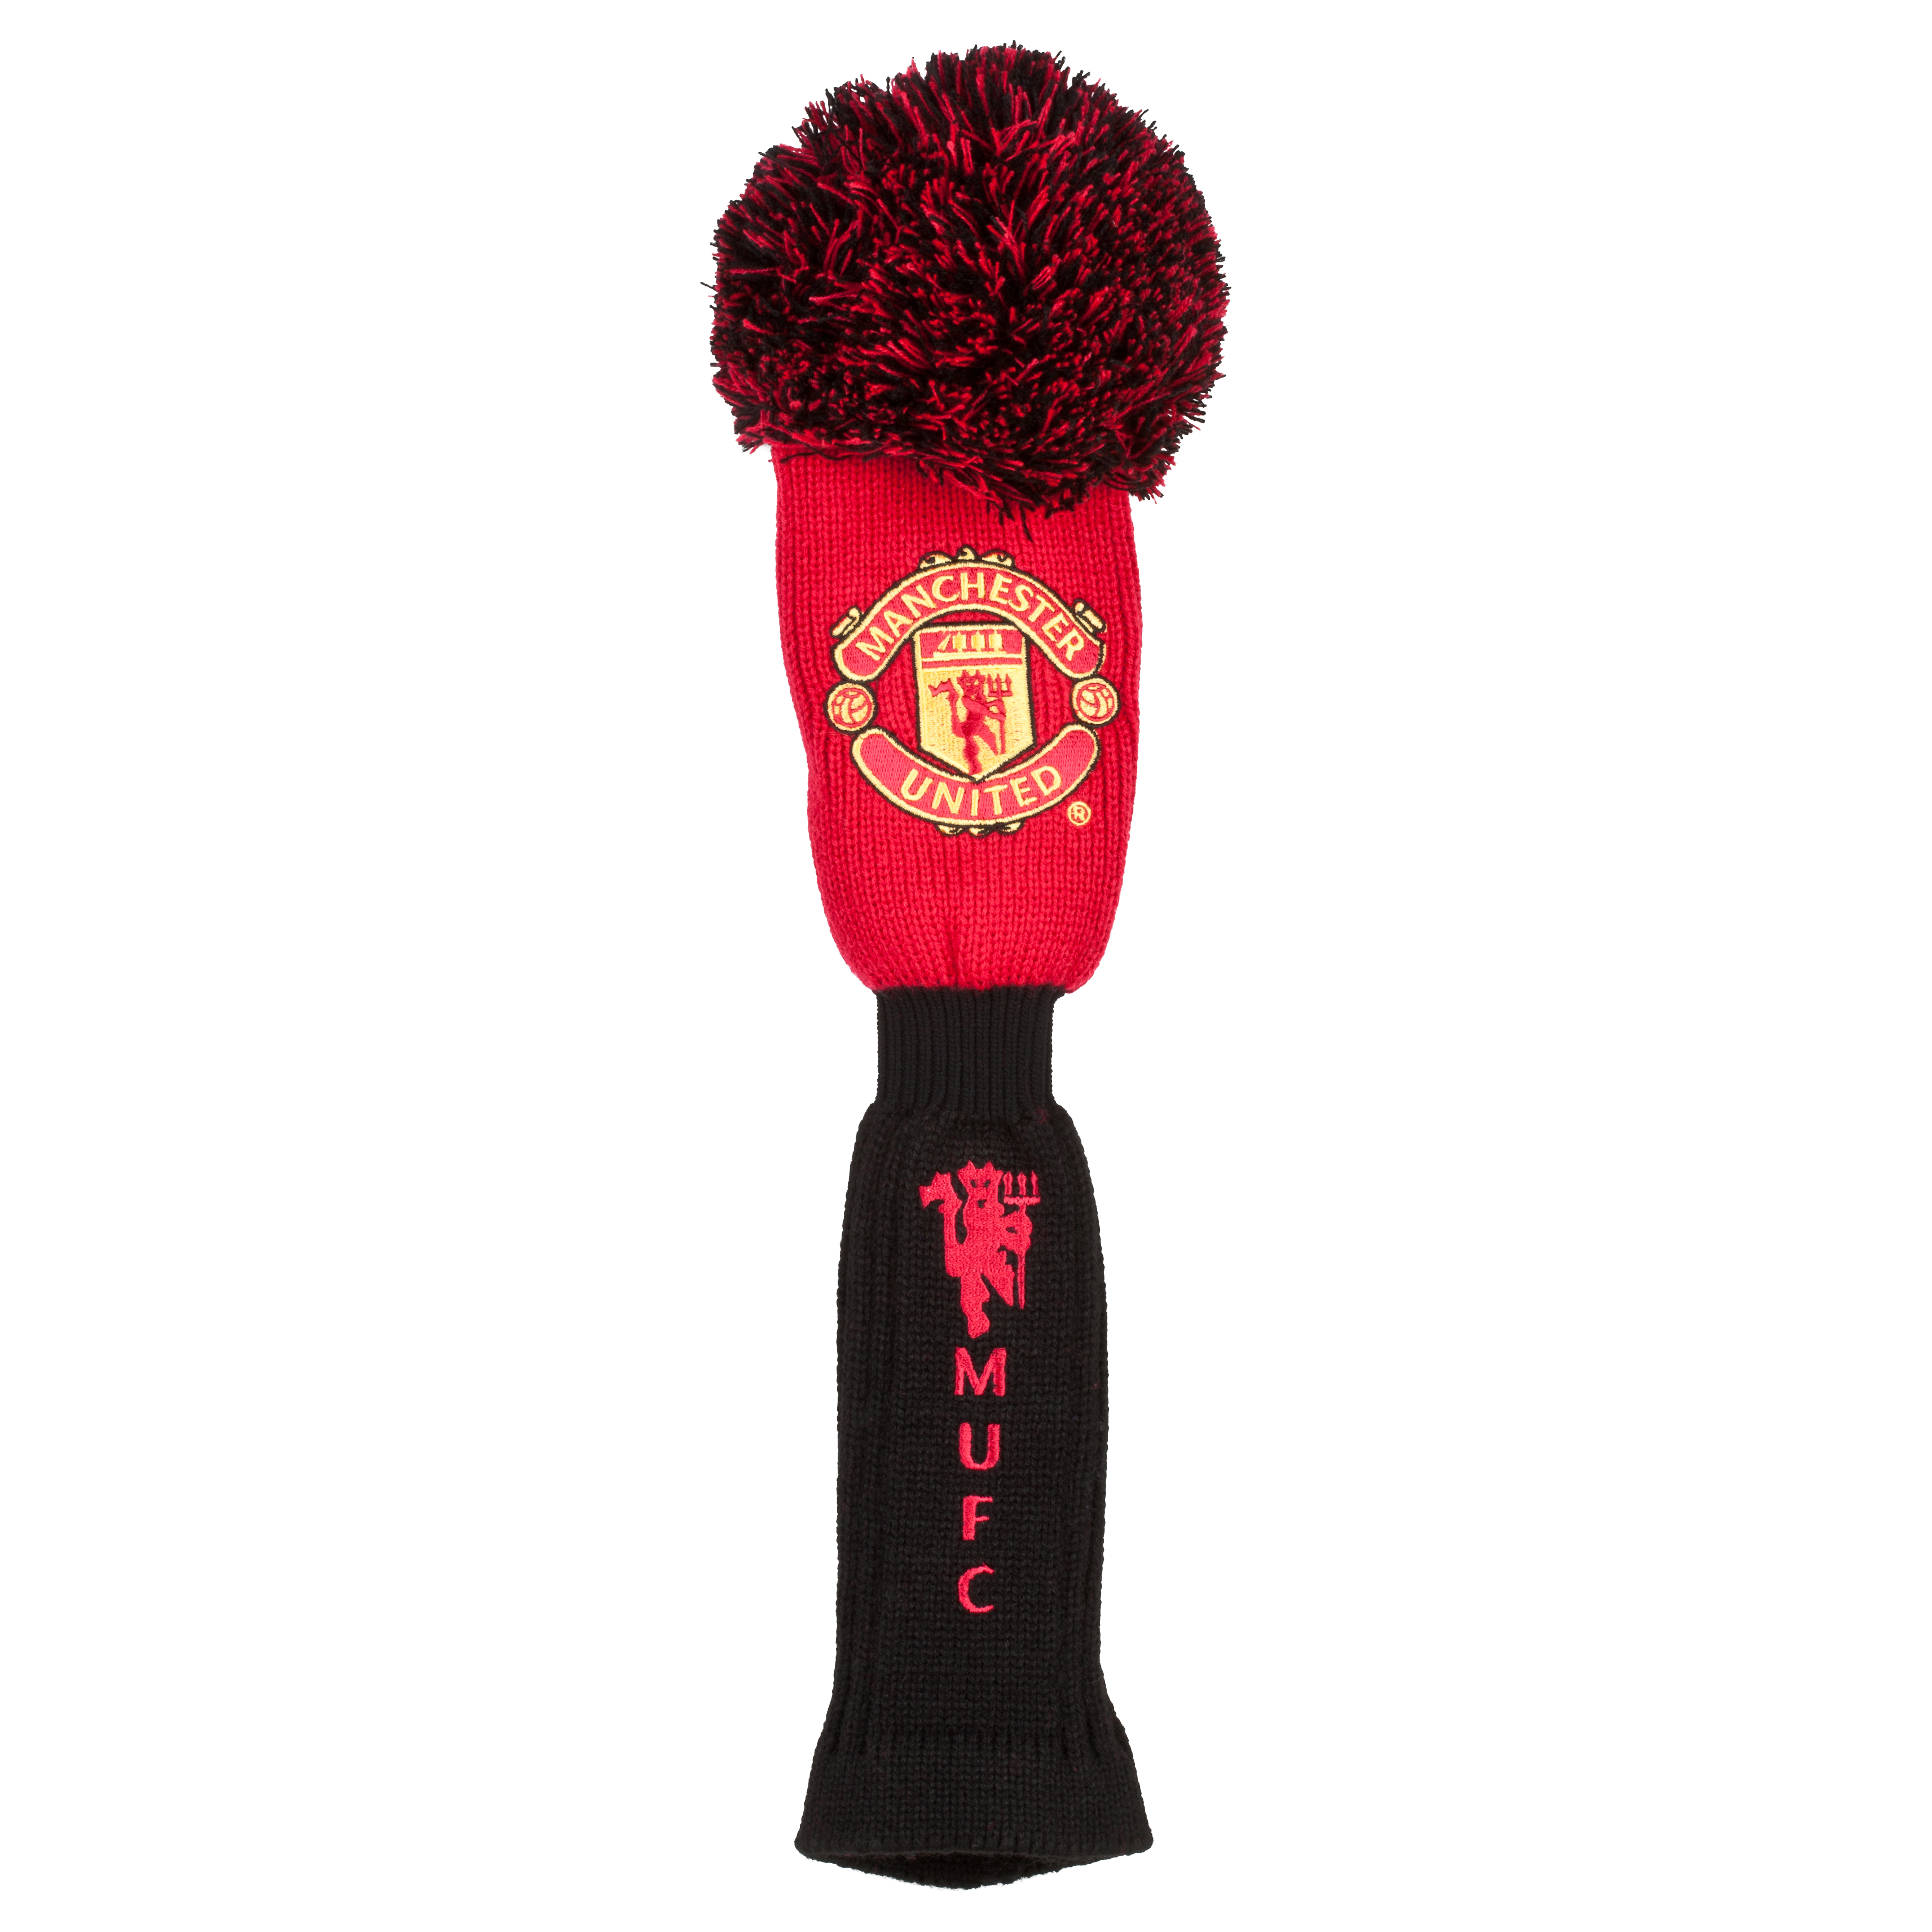 Manchester United Golf Pom-Pom Driver Headcover - Red